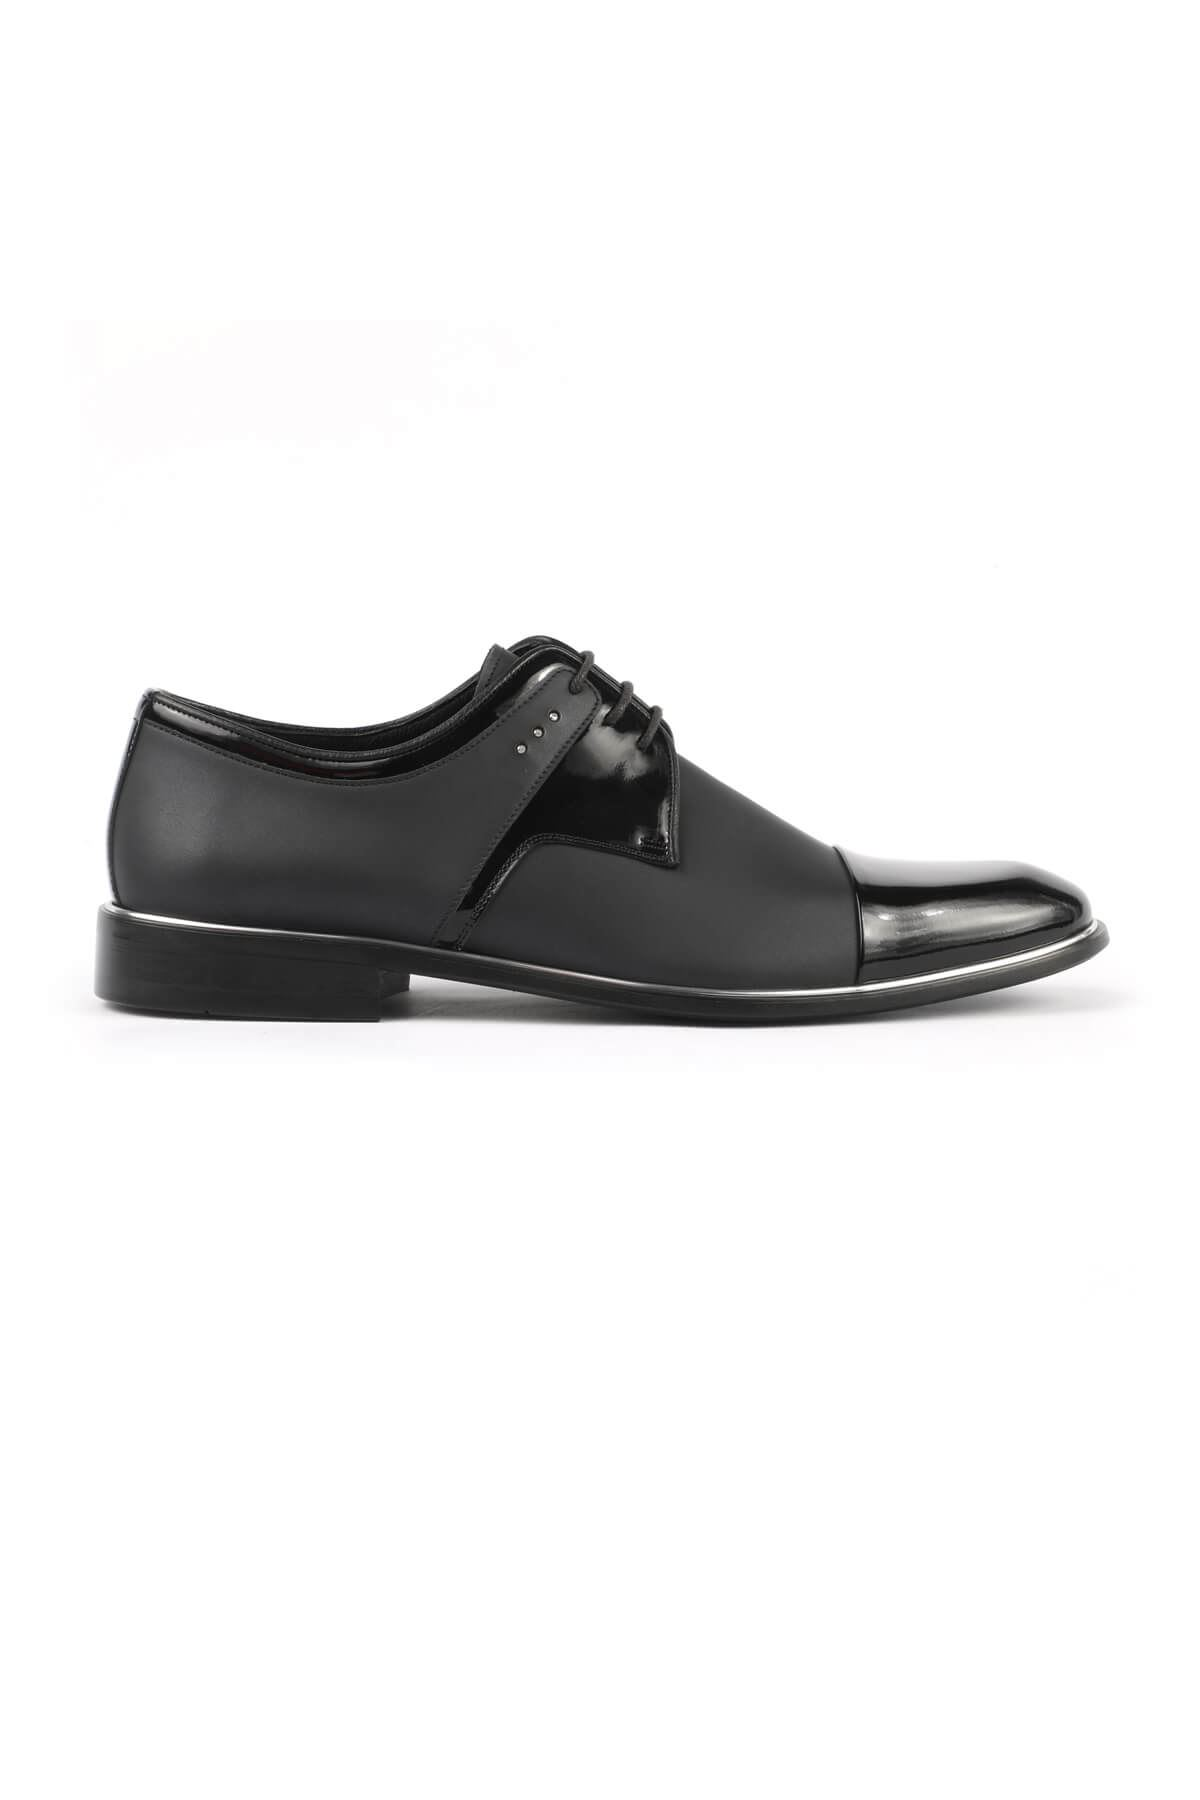 Libero 2862 Black Classic Shoes